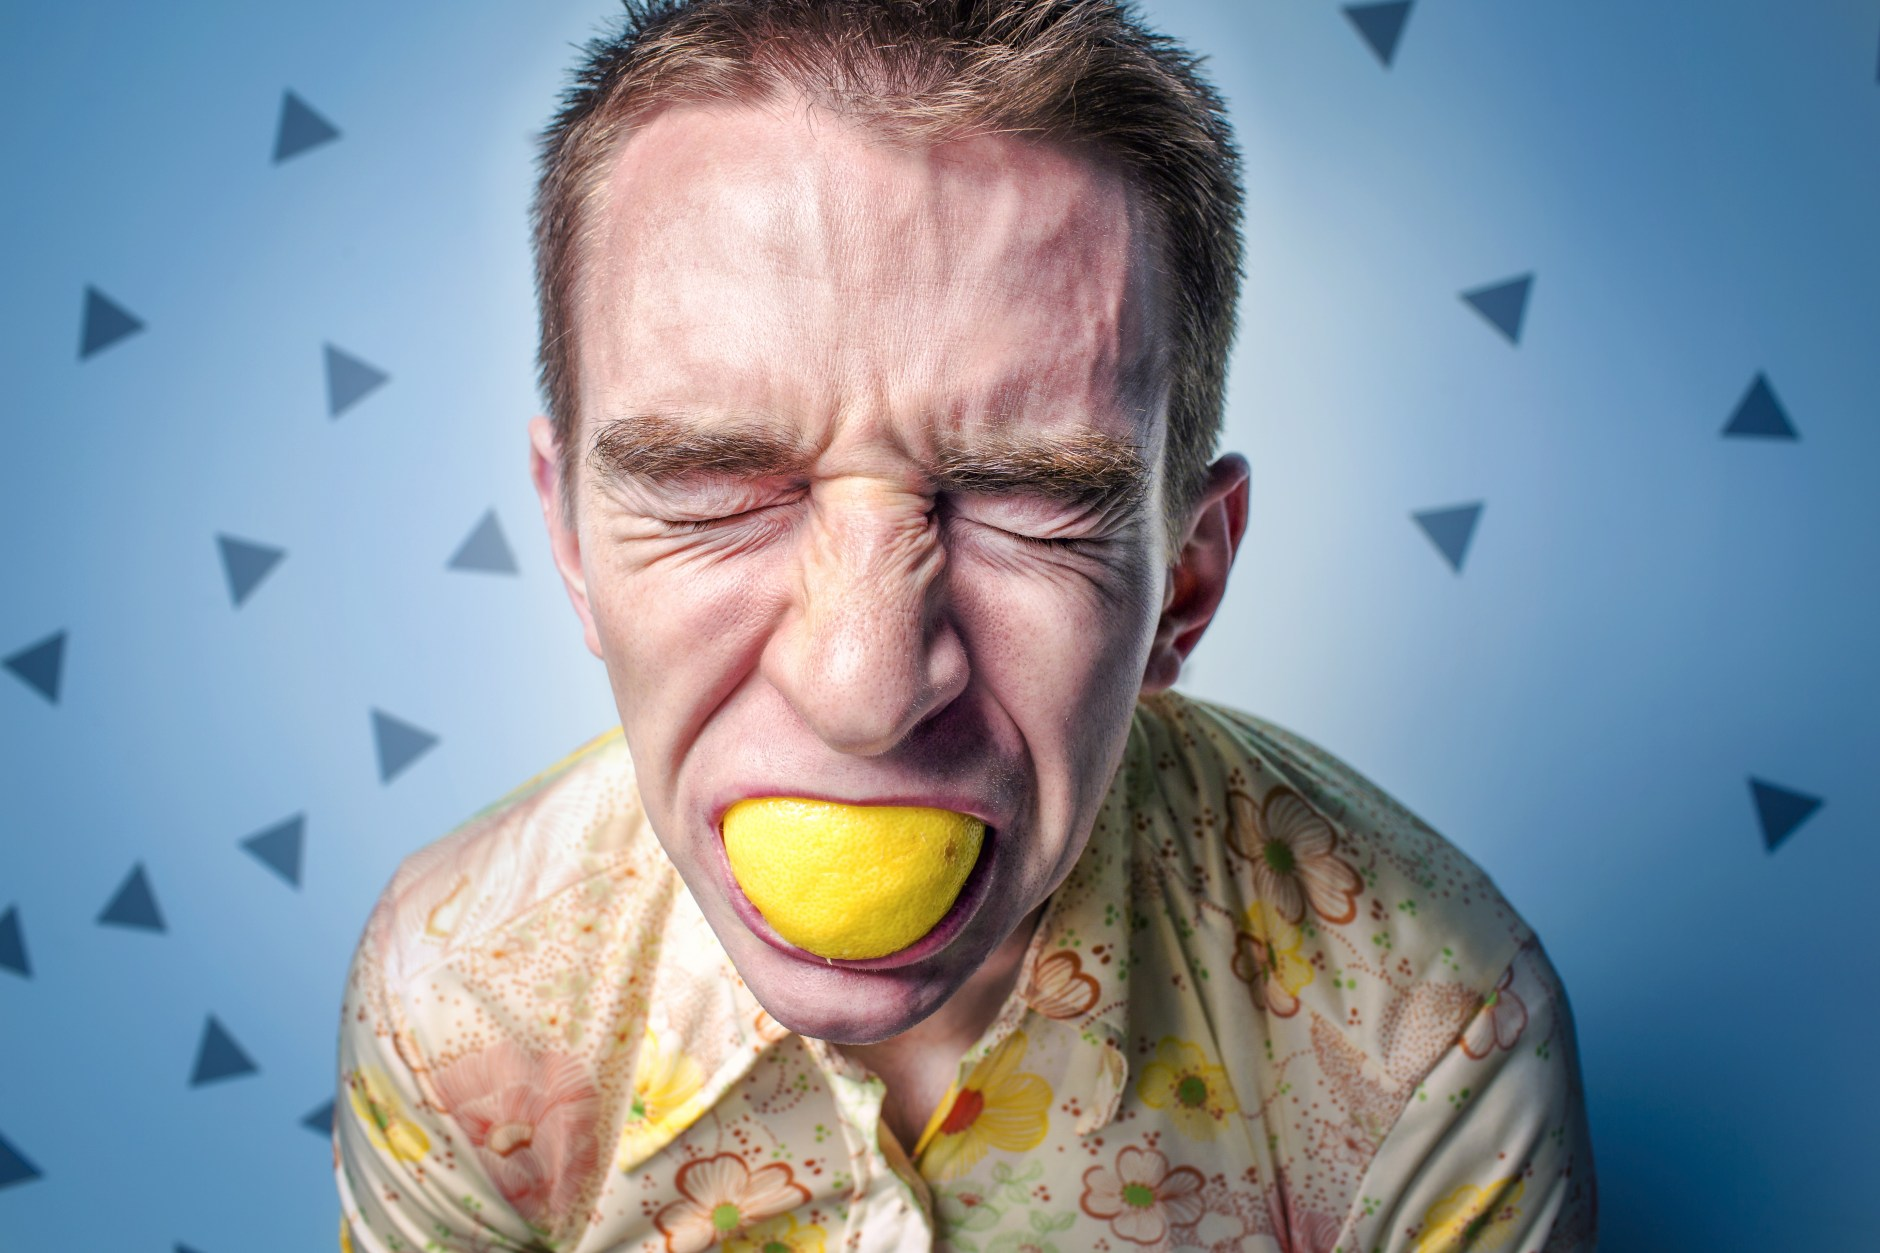 person eating lemon